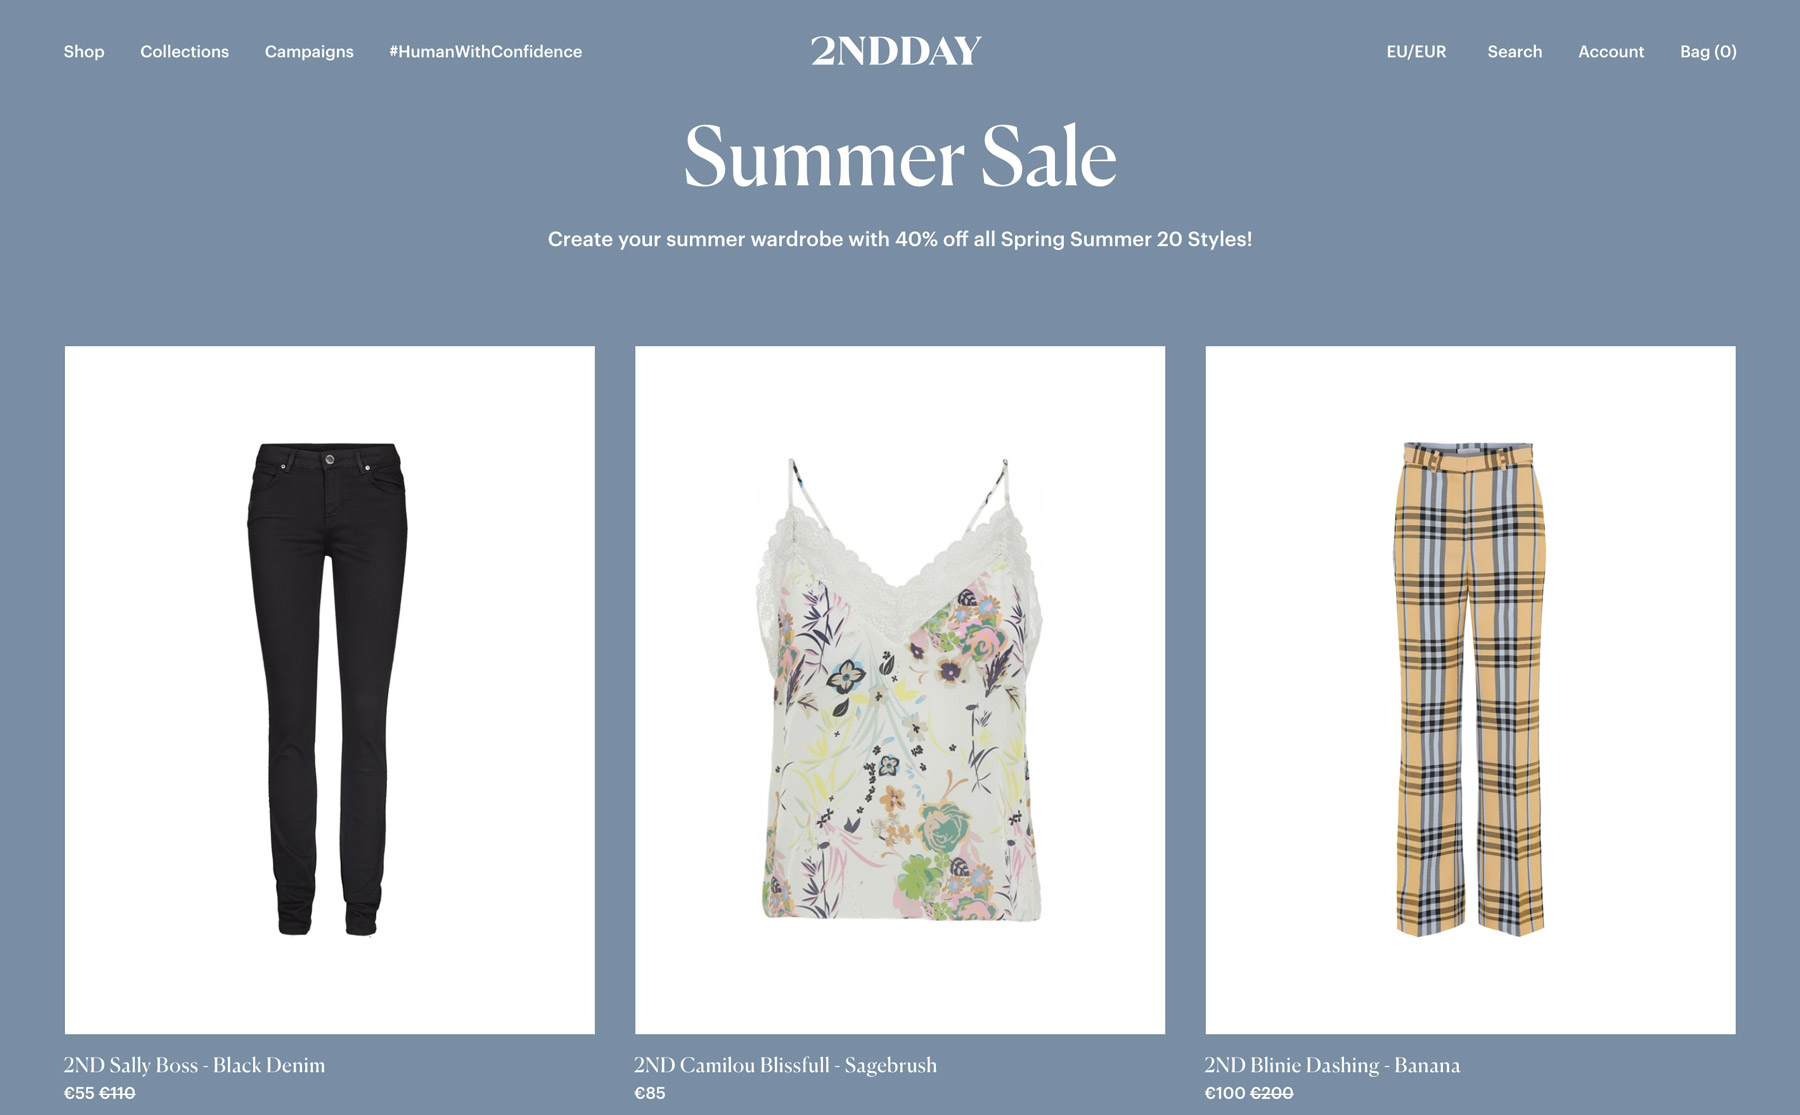 Two pairs of pants and a top in the summer sale are presented at a discounted price in the design of the 2NDDAY webshop.